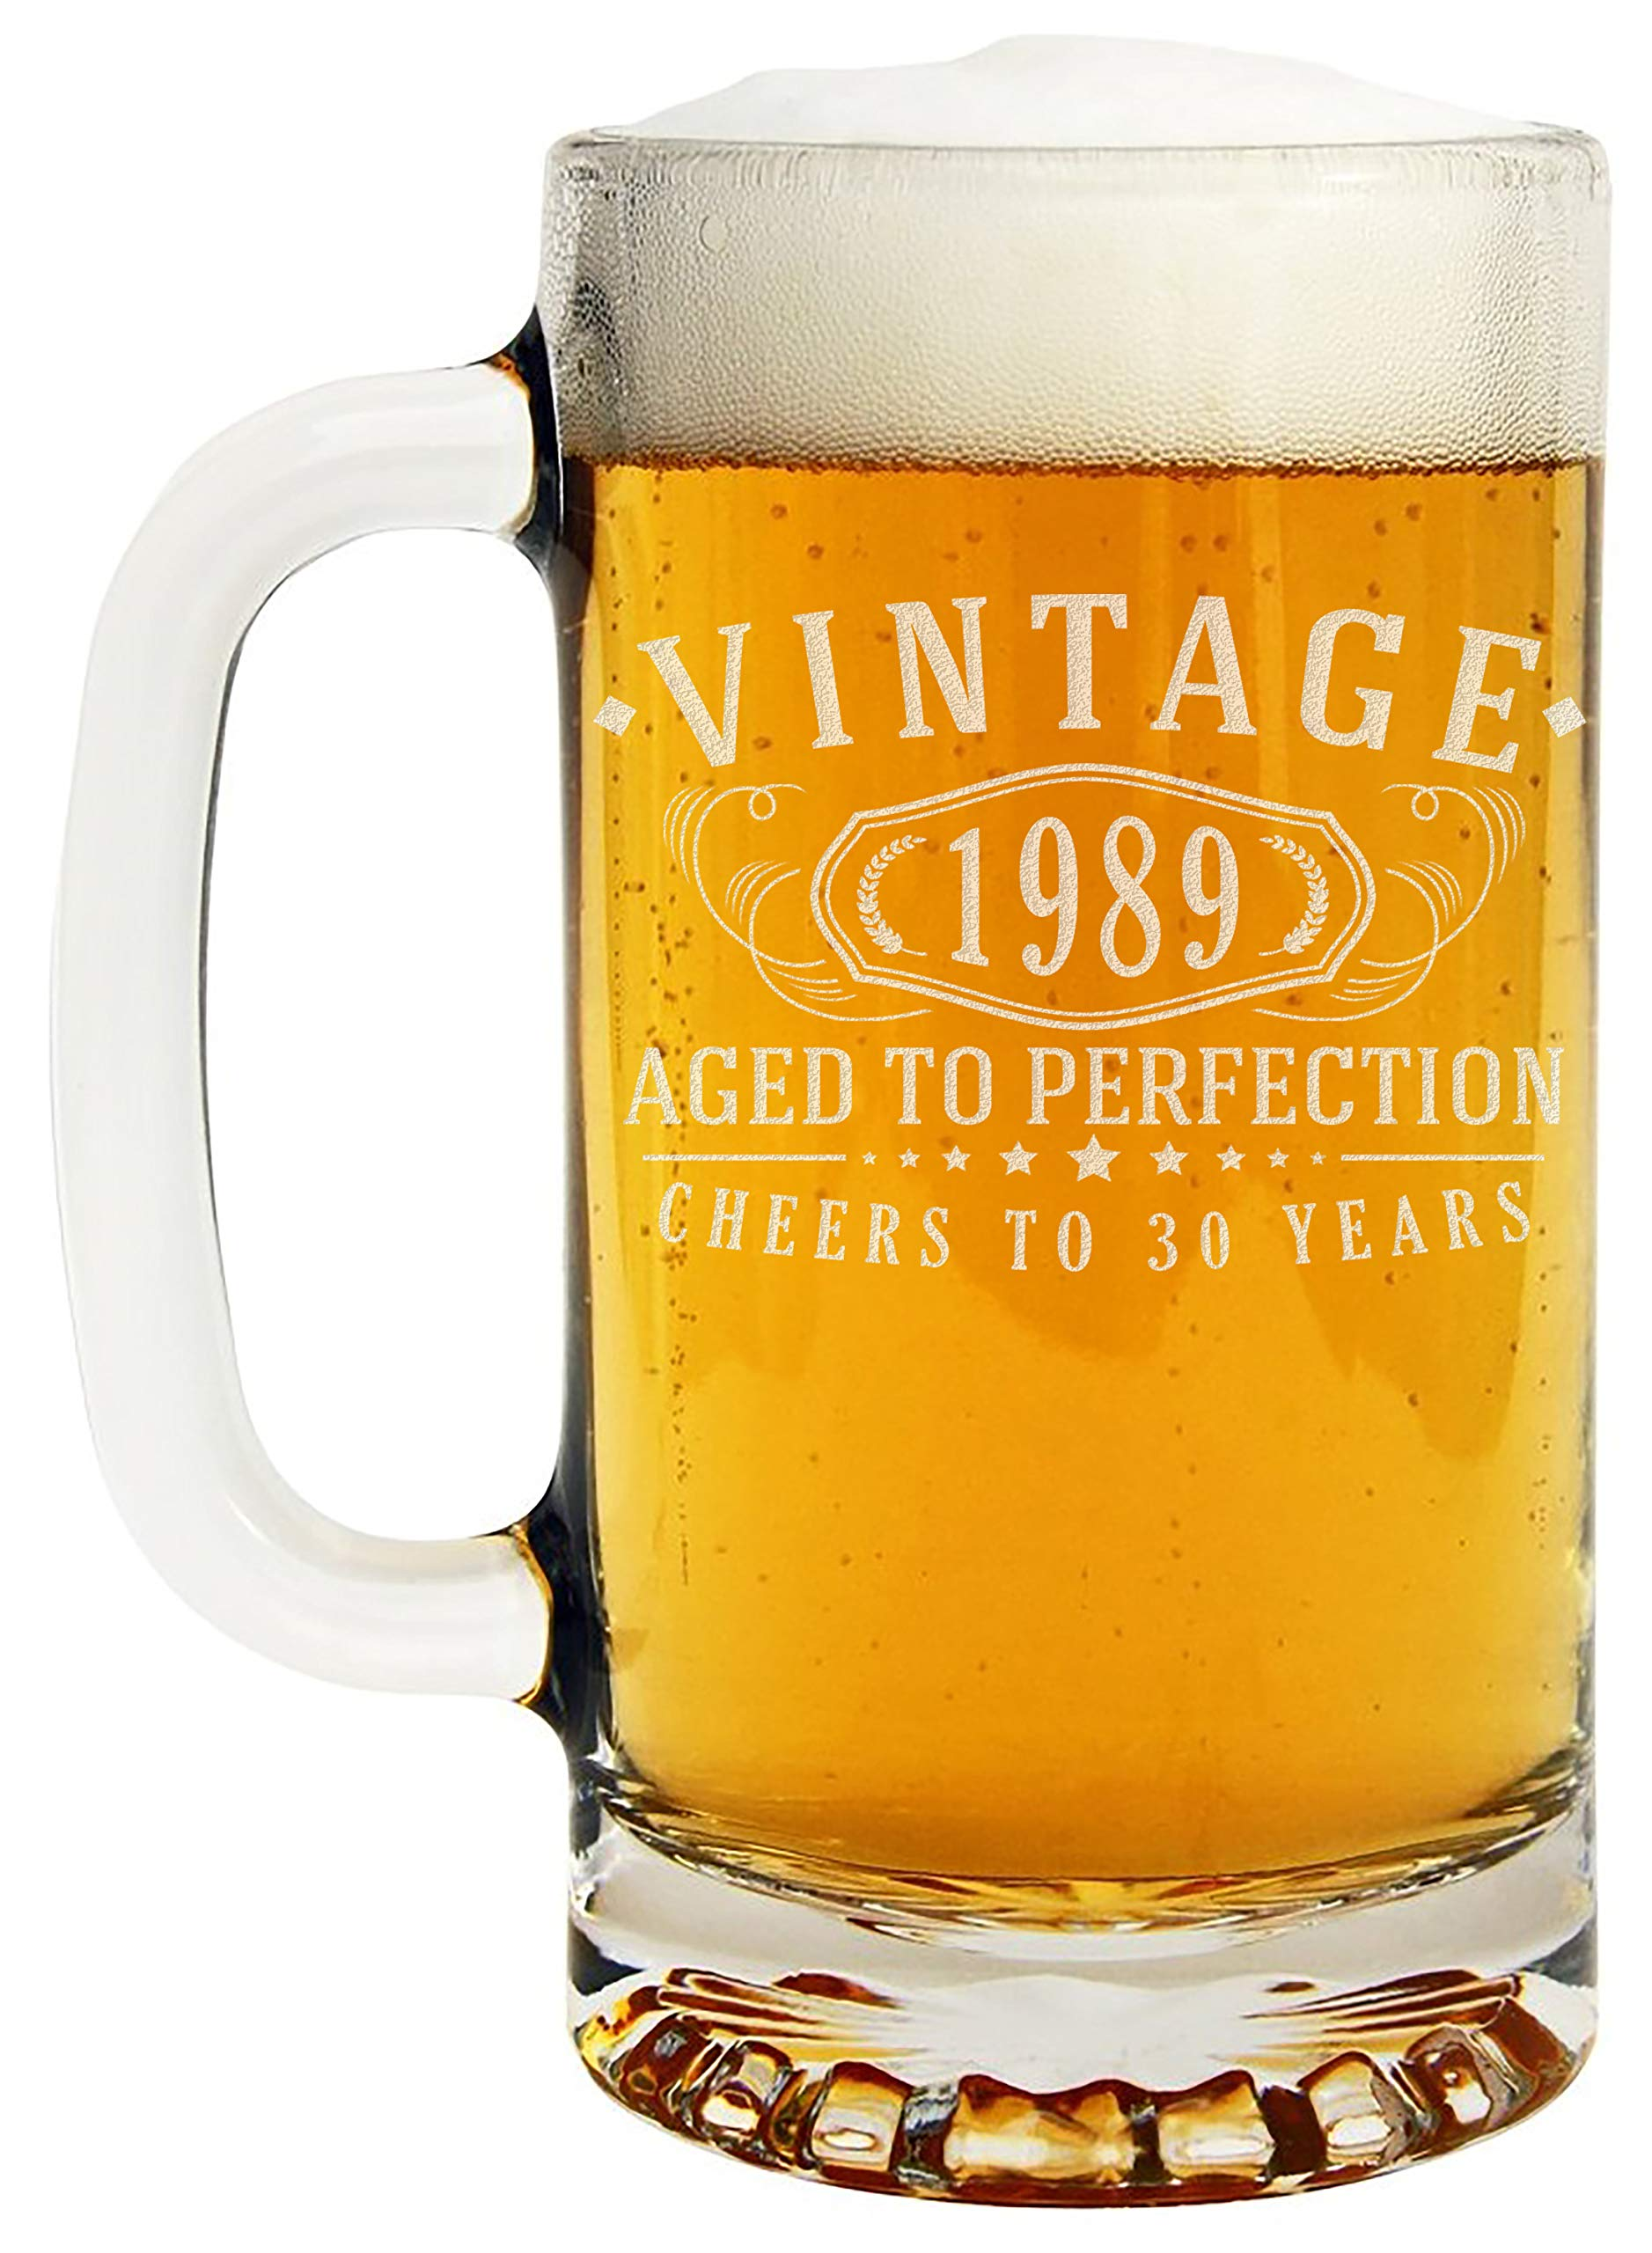 30th Birthday Etched 16oz Glass Beer Mug - Vintage 1989 Aged to Perfection - 30 years old gifts